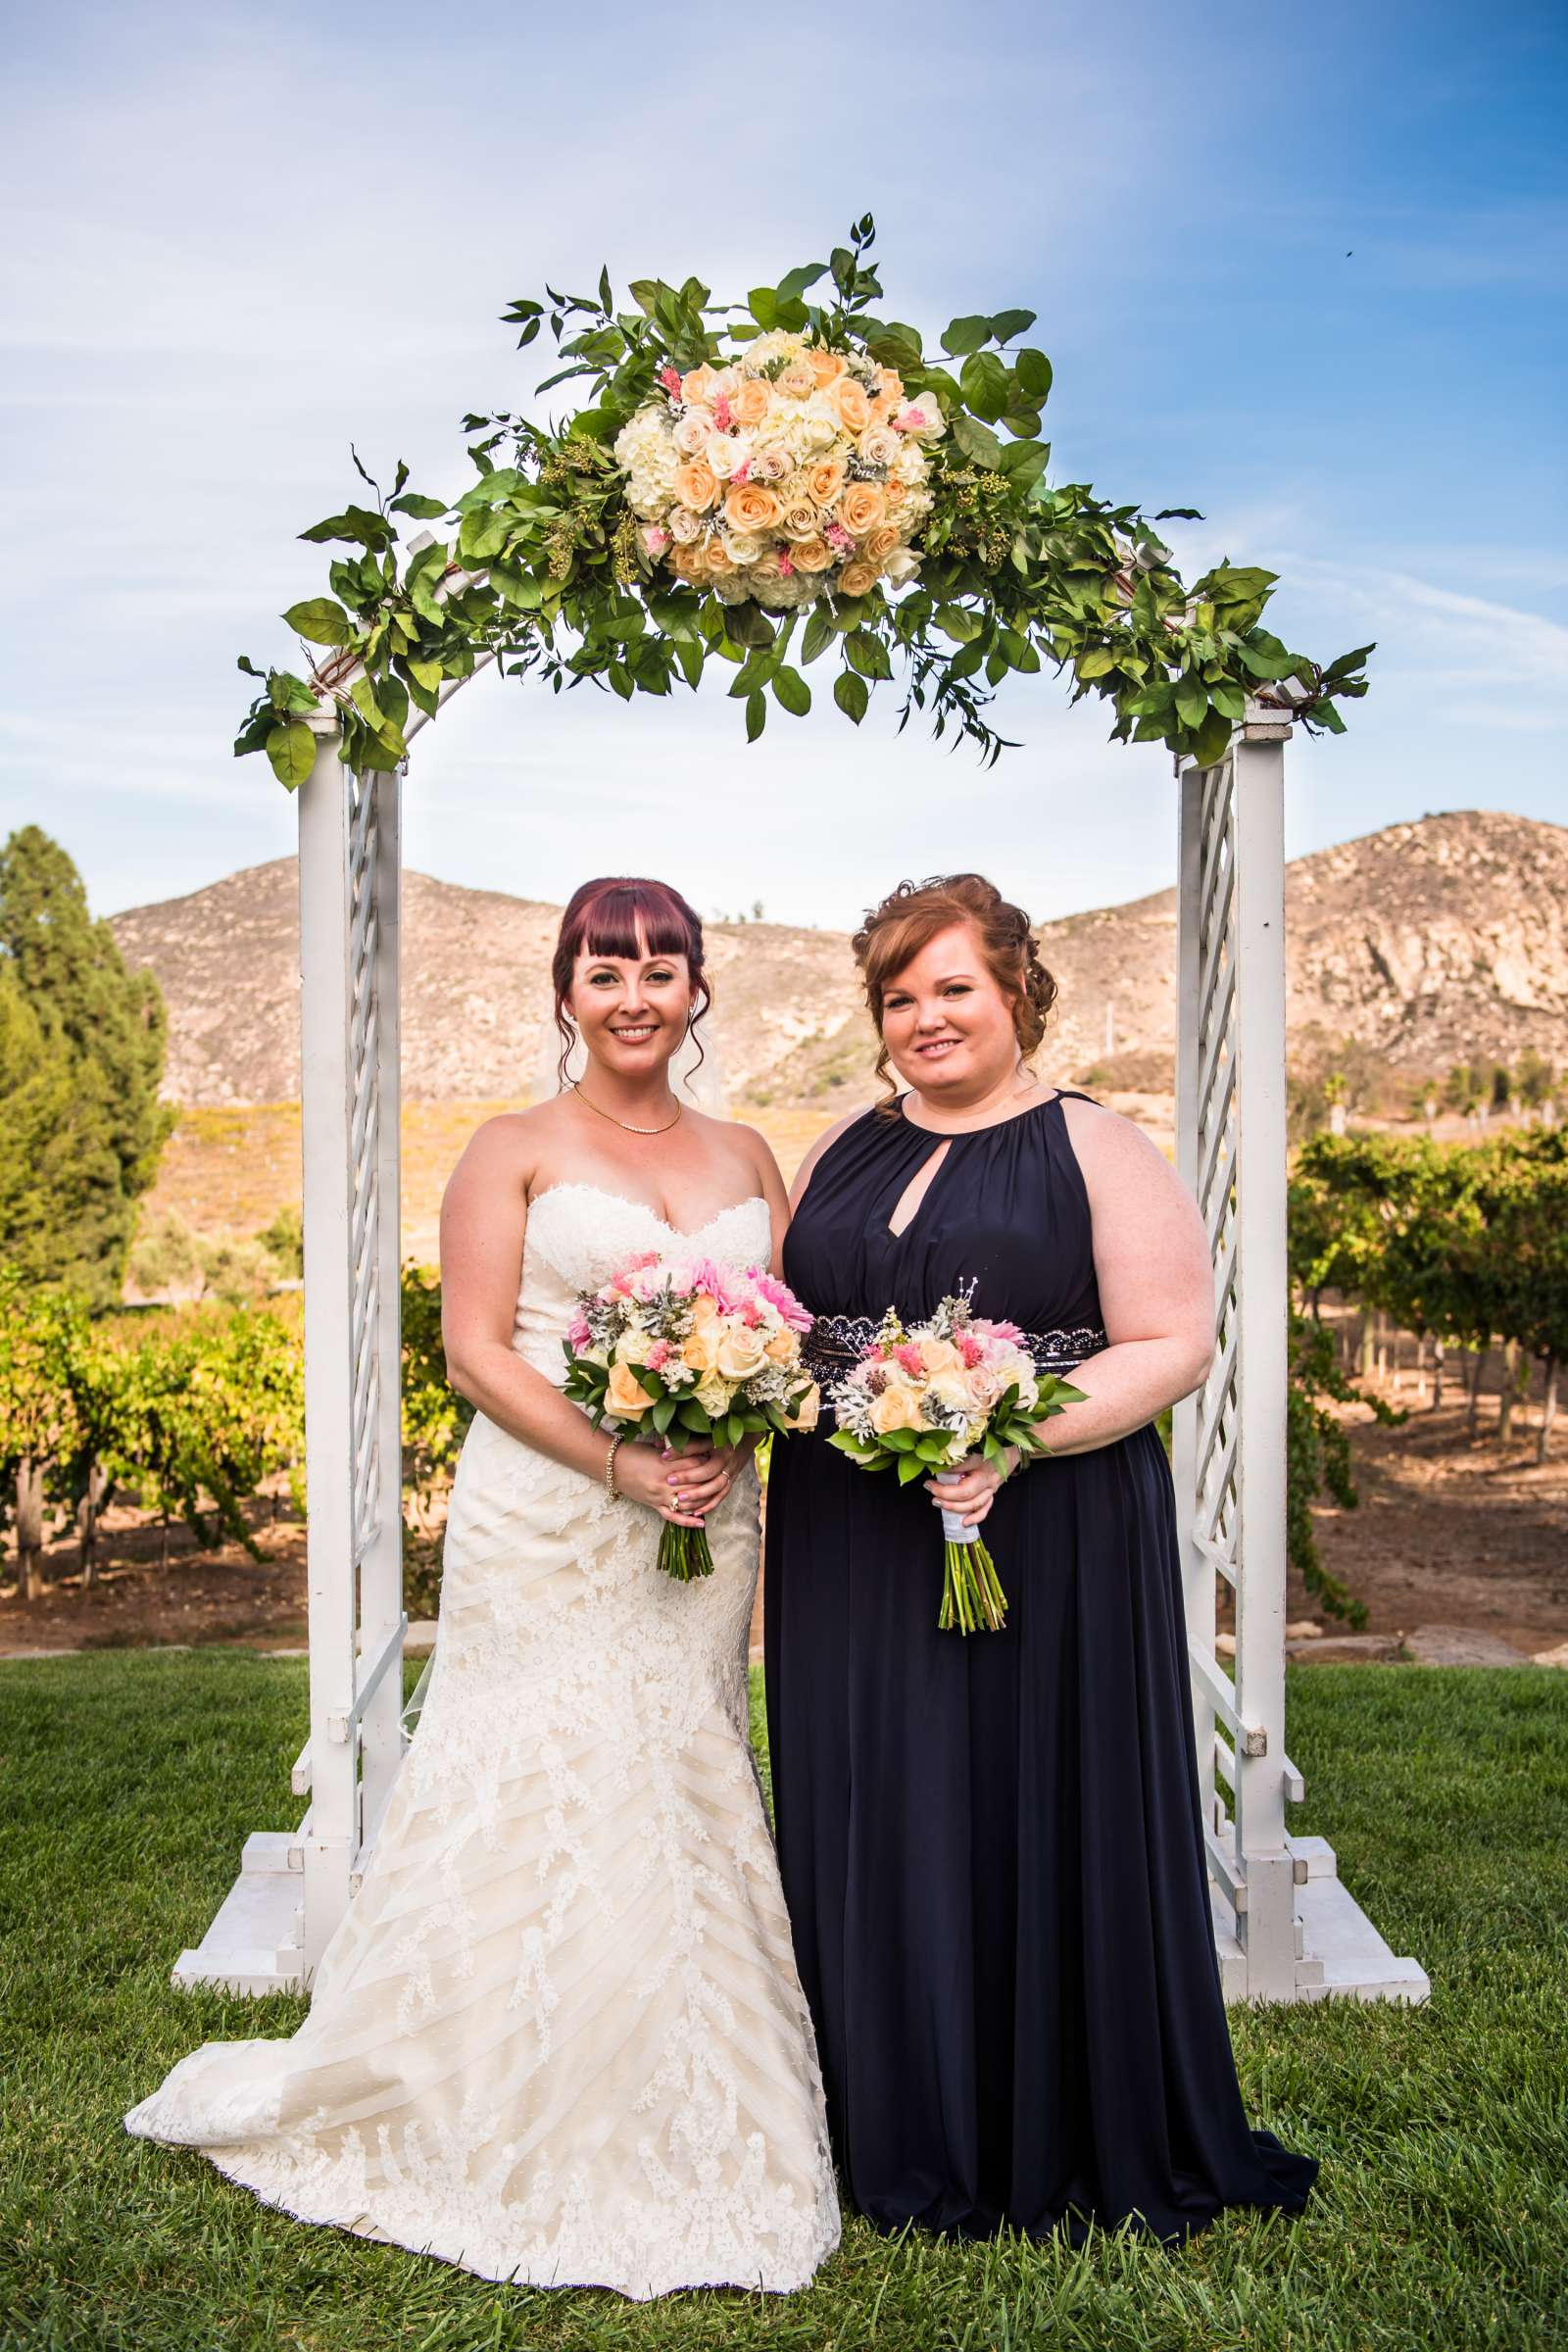 Orfila Vineyards Wedding, Tulasi and Richard Wedding Photo #13 by True Photography